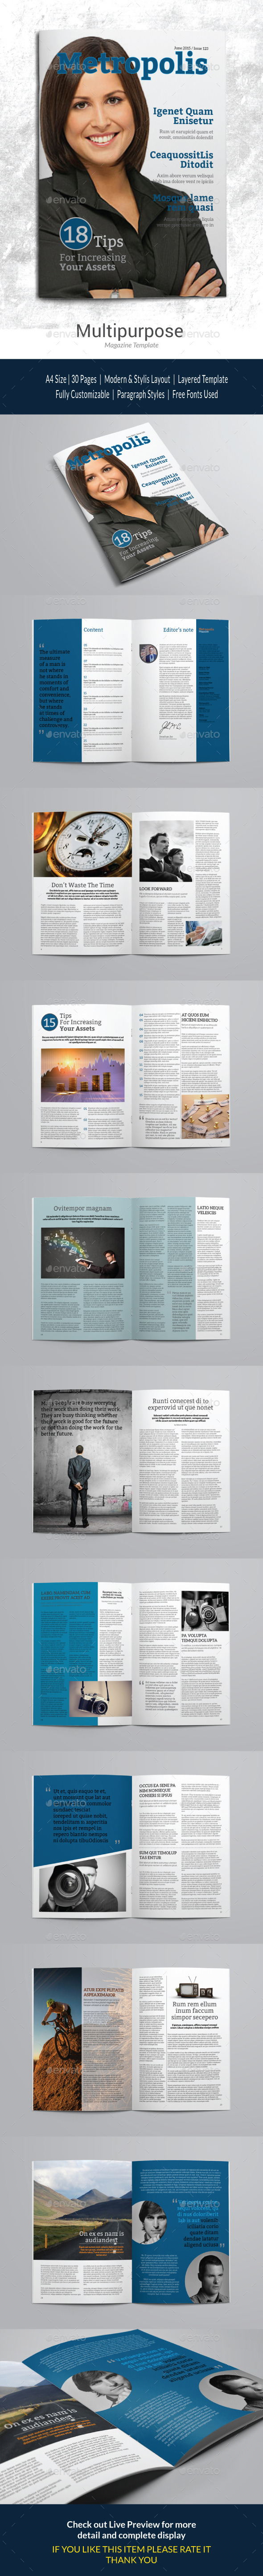 GraphicRiver Indesign Magazine Template vol 1 11945093